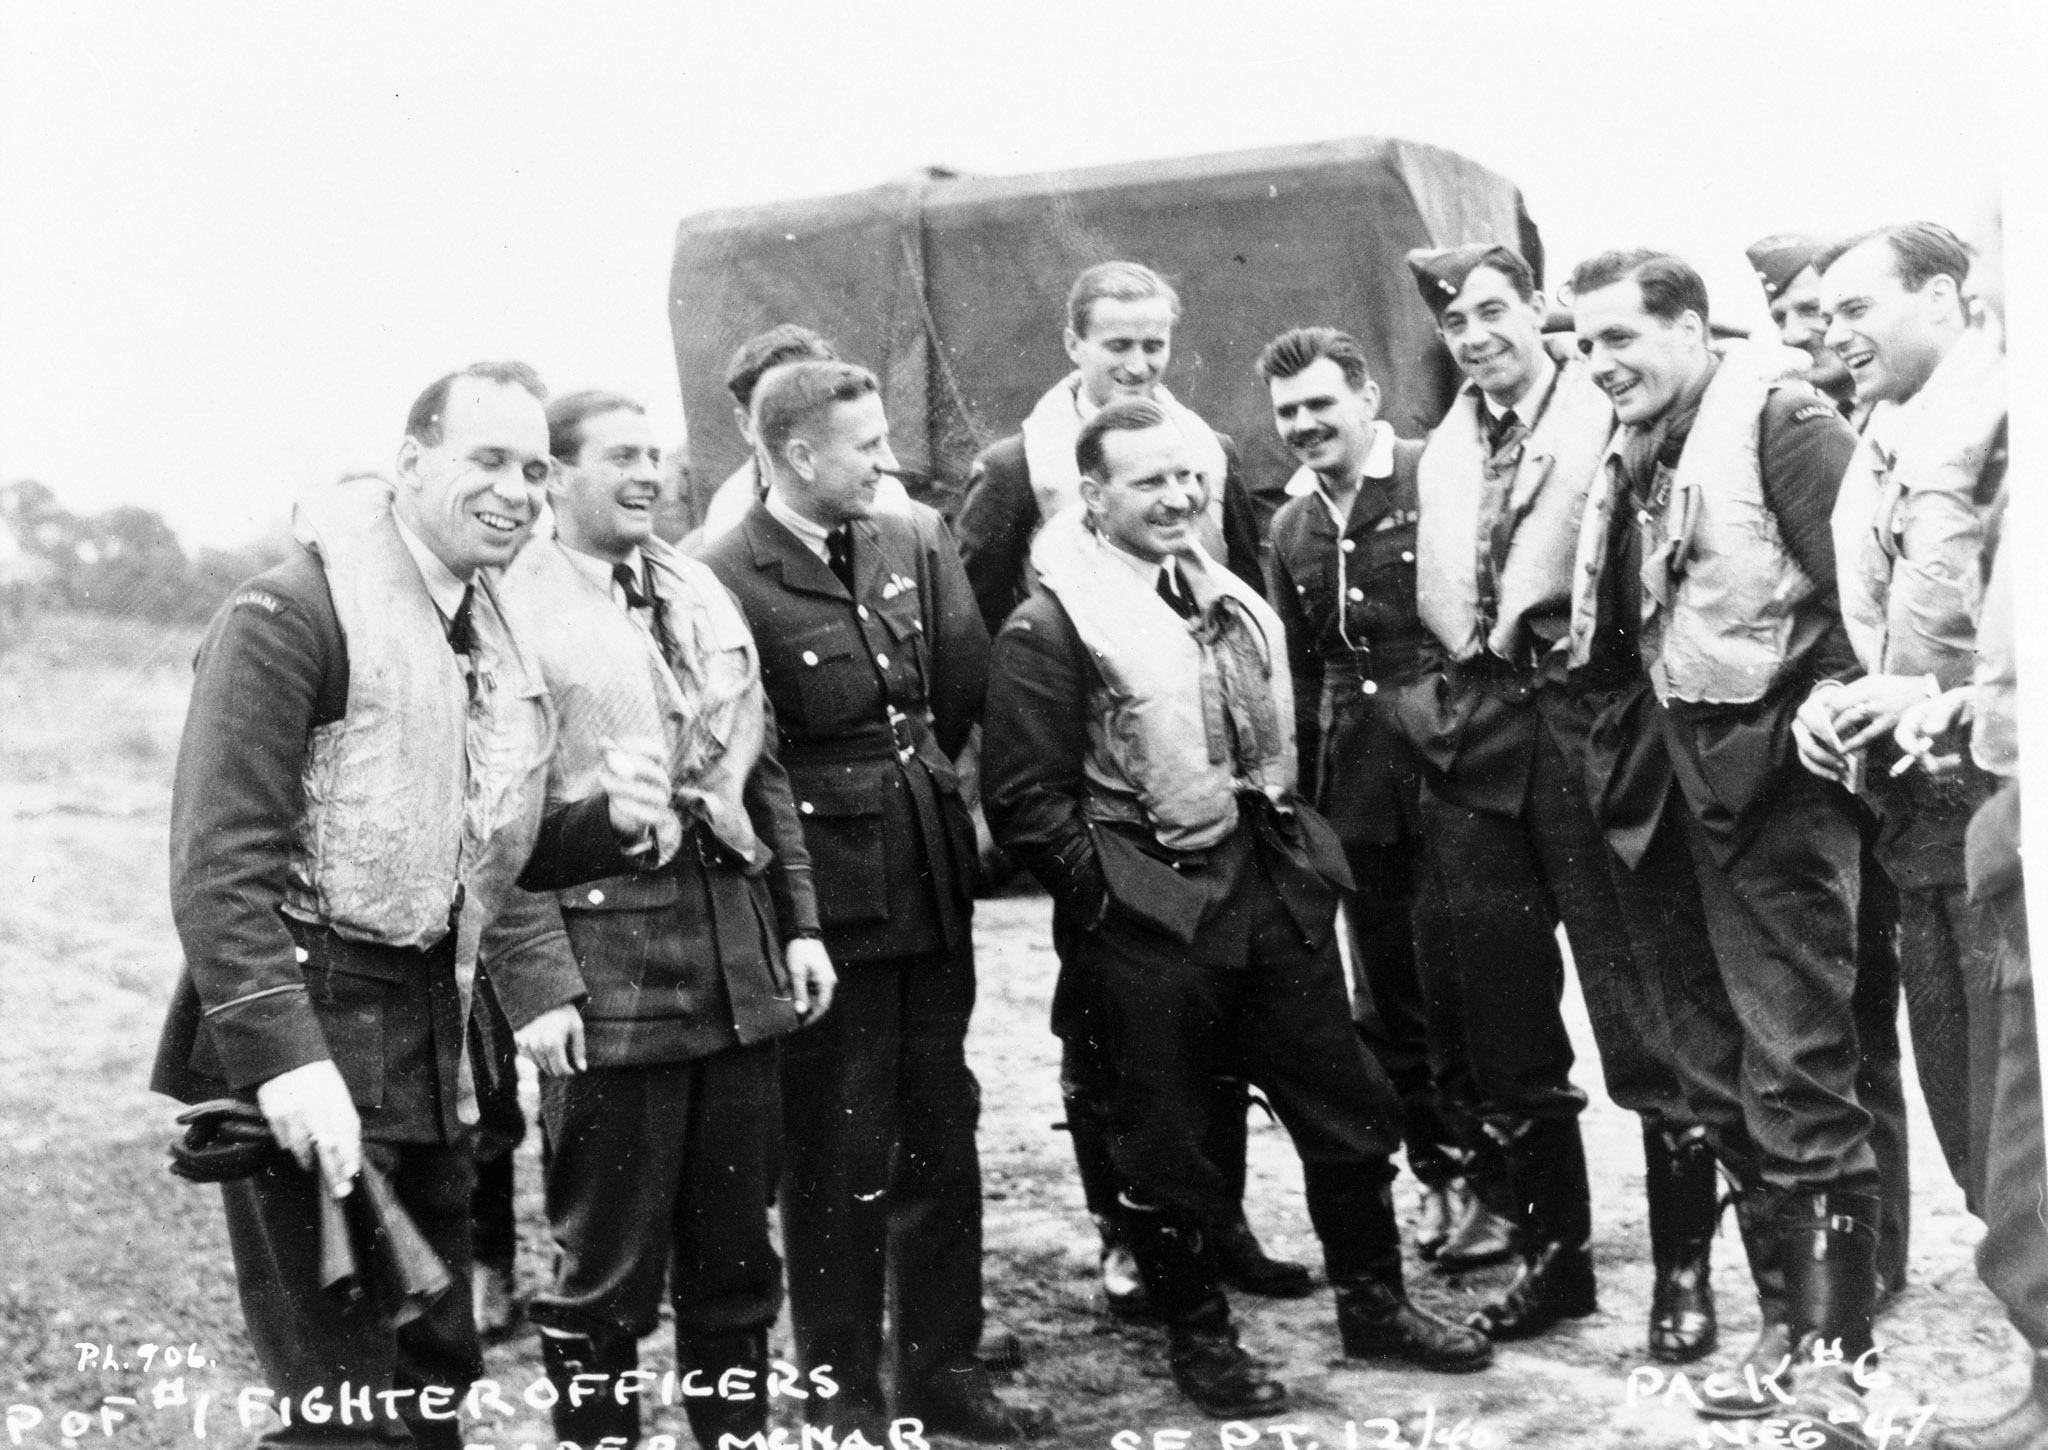 Squadron Leader Ernest McNab and some of his pilots pose for a photo and a laugh September 12, 1940, during the Battle of Britain: (left to right) Flying Officer William P. Sprenger, Flying Officer Otto John Peterson, Flight Lieutenant W.R. Pollock (adjudant), Flying Officer Paul Brooks Pitcher, Squadron Leader McNab, Flying Officer Peter William Lochnan, Flight Lieutenant Edwin Michael Reyno, Flying Officer Eric Walter Beardmore, Flying Officer S.T. Blaiklock (intelligence officer) and Flying Officer Robert William Norris. PHOTO: Library and Archives of Canada, PL-906